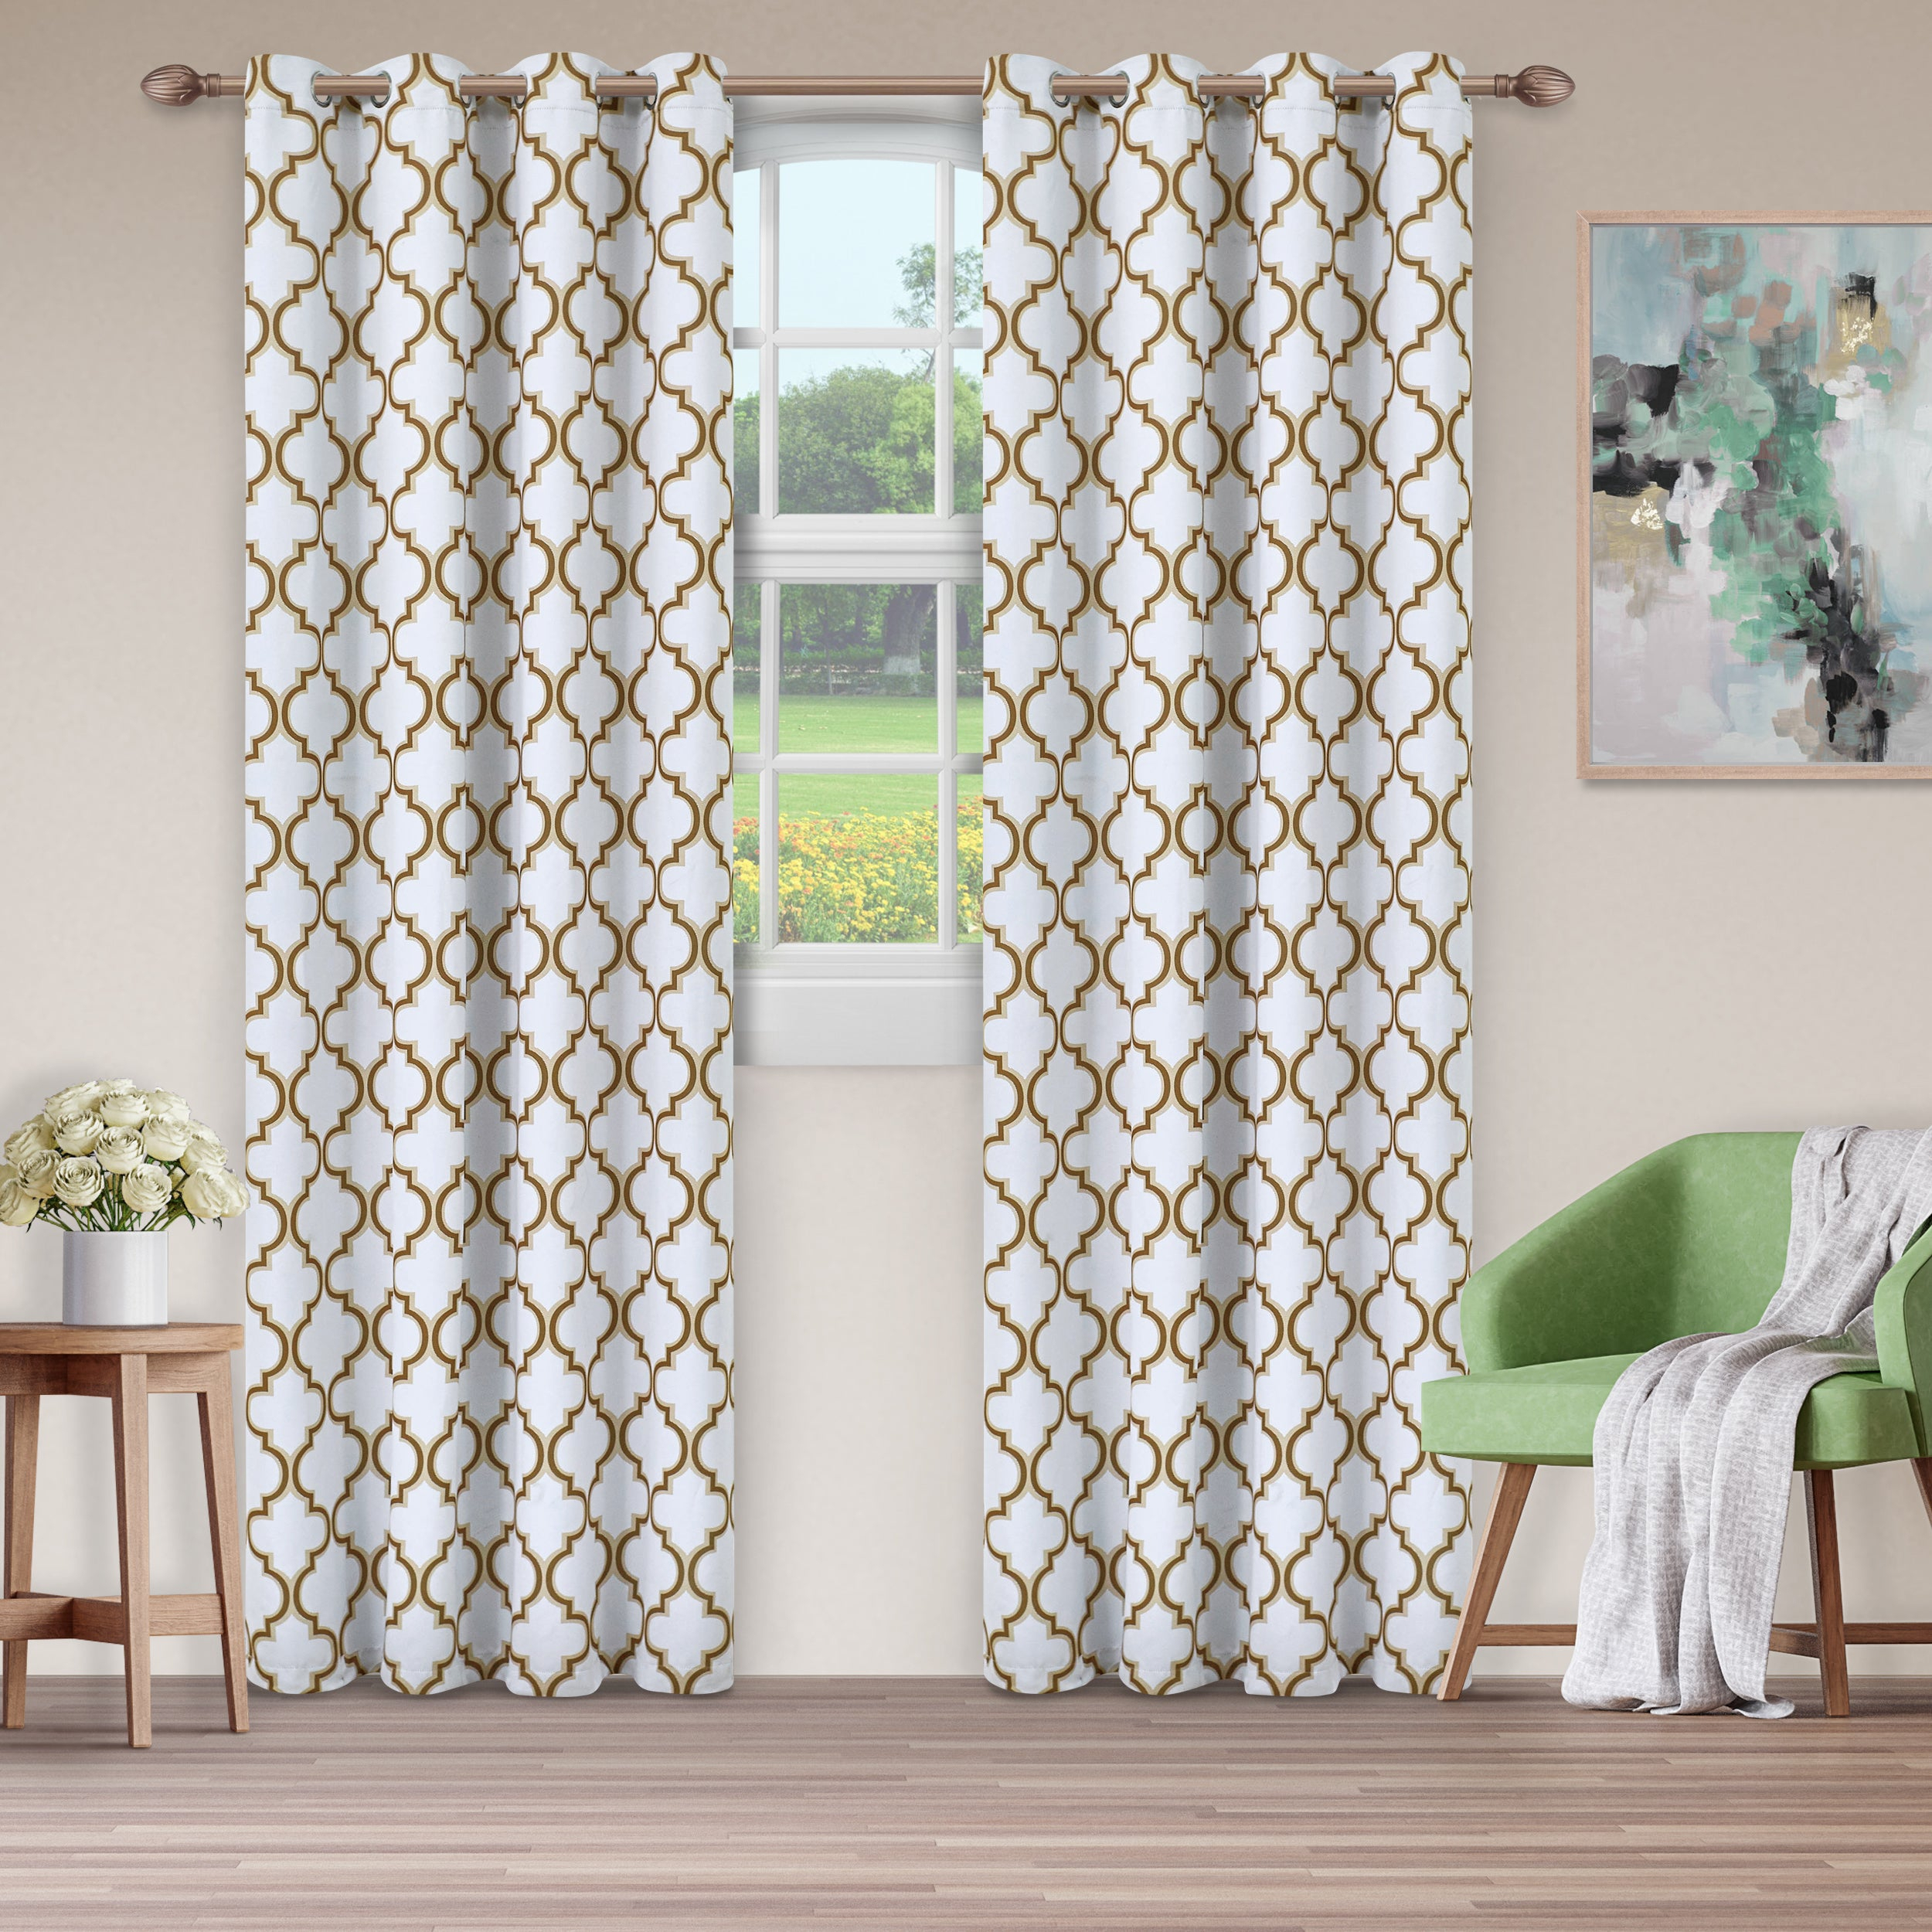 Details About Superior Bohemian Trellis Blackout Grommet Curtain Panel Intended For Superior Solid Insulated Thermal Blackout Grommet Curtain Panel Pairs (View 15 of 30)